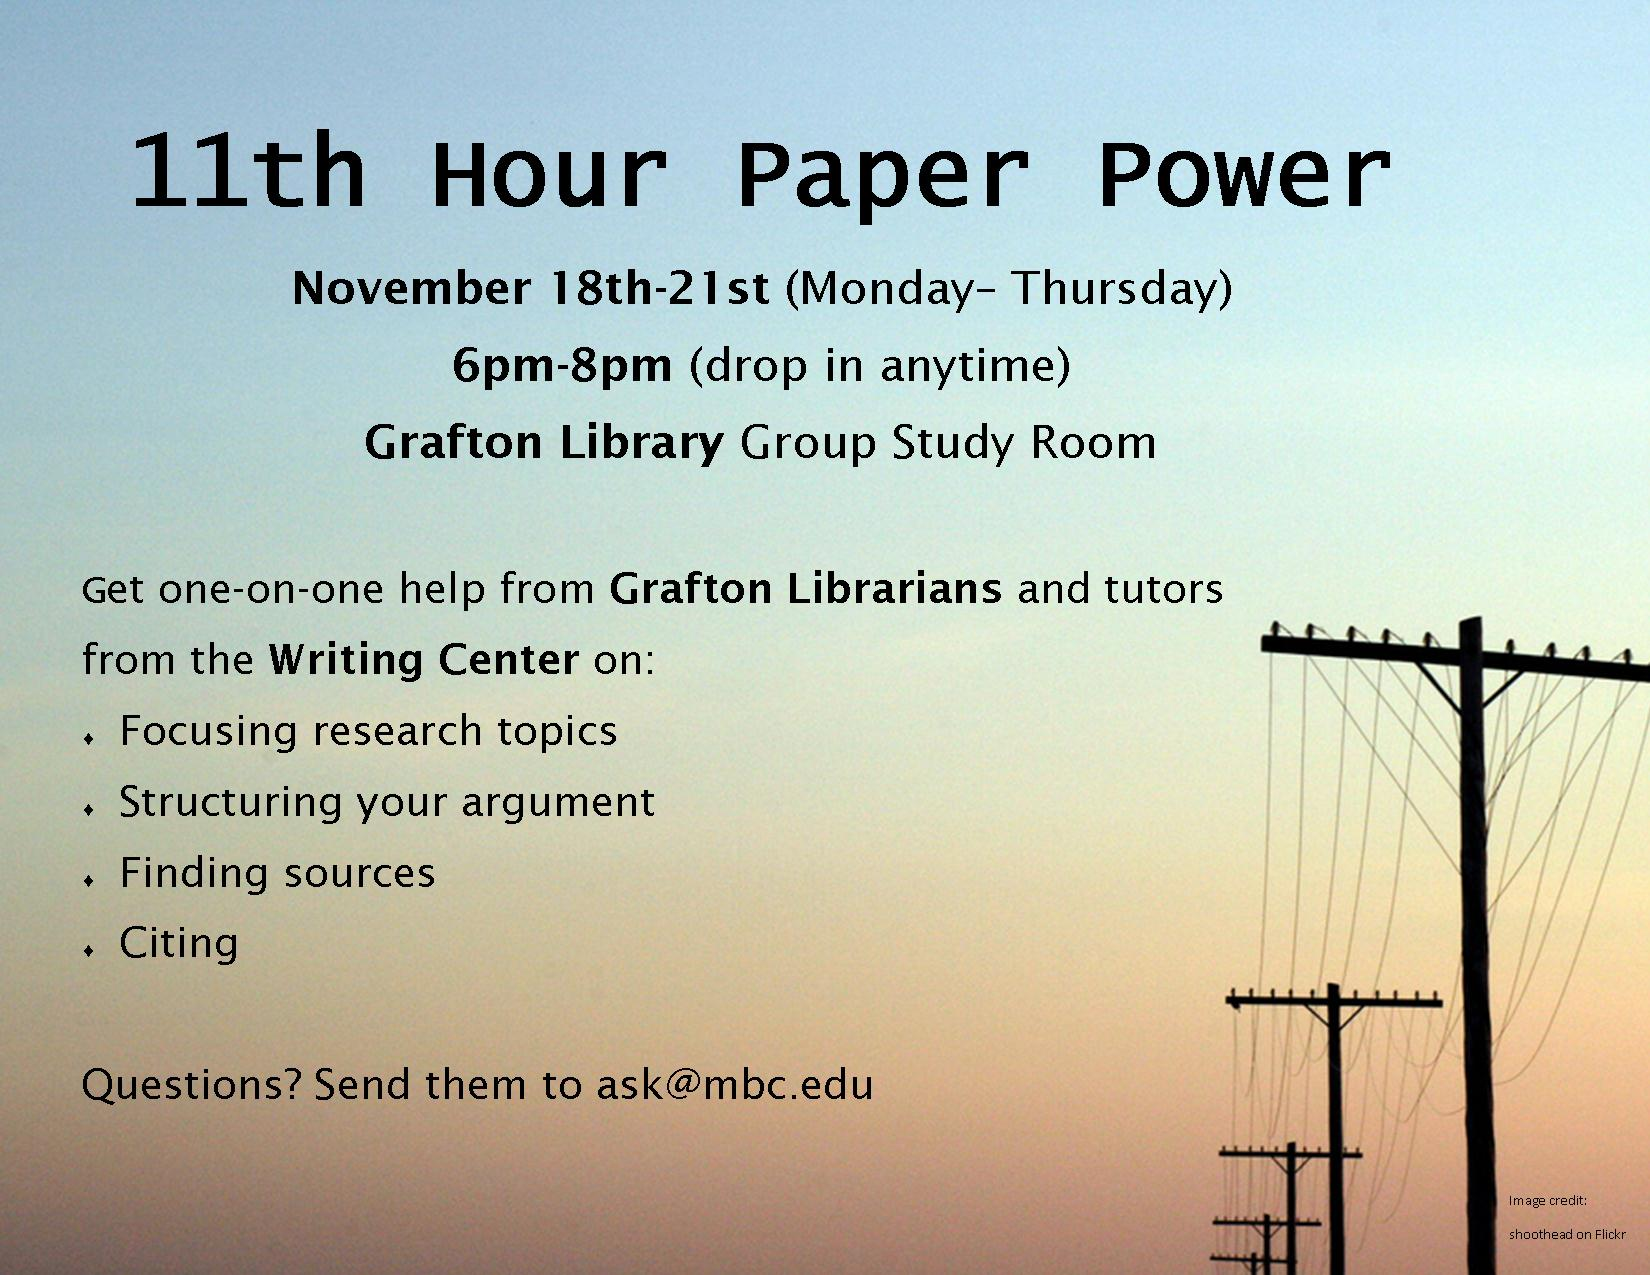 11th hour paper power from 2013